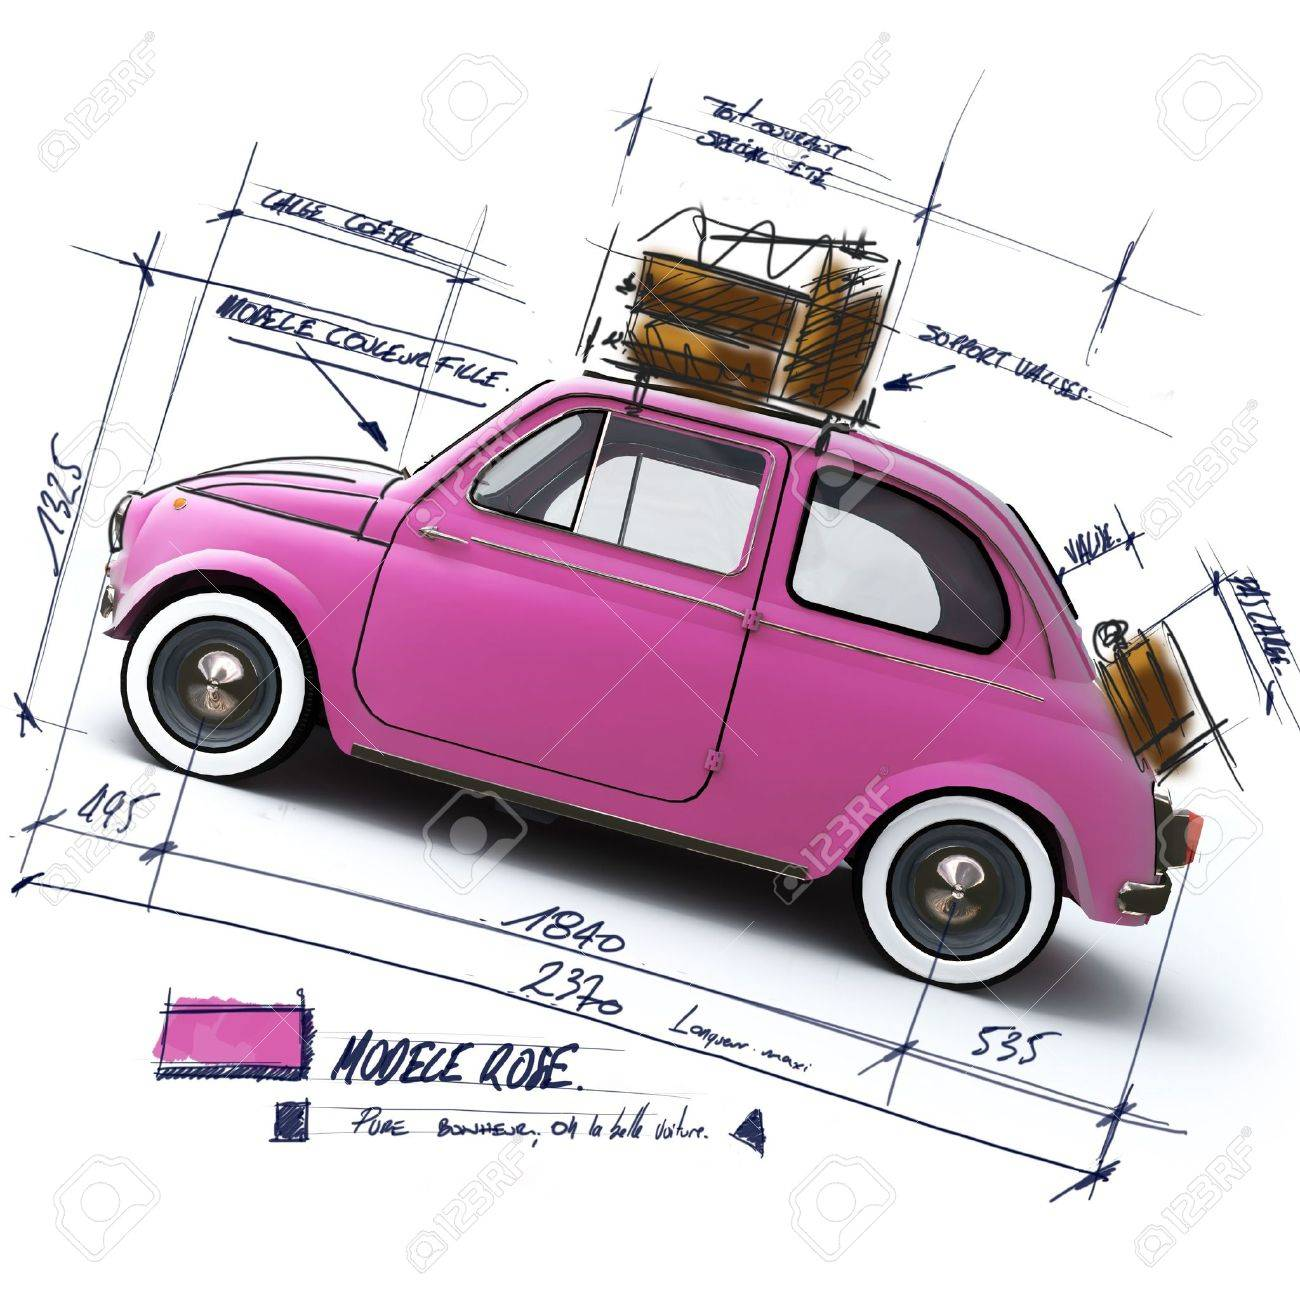 Retro pink car design with scribbled notes and measures - 3067607